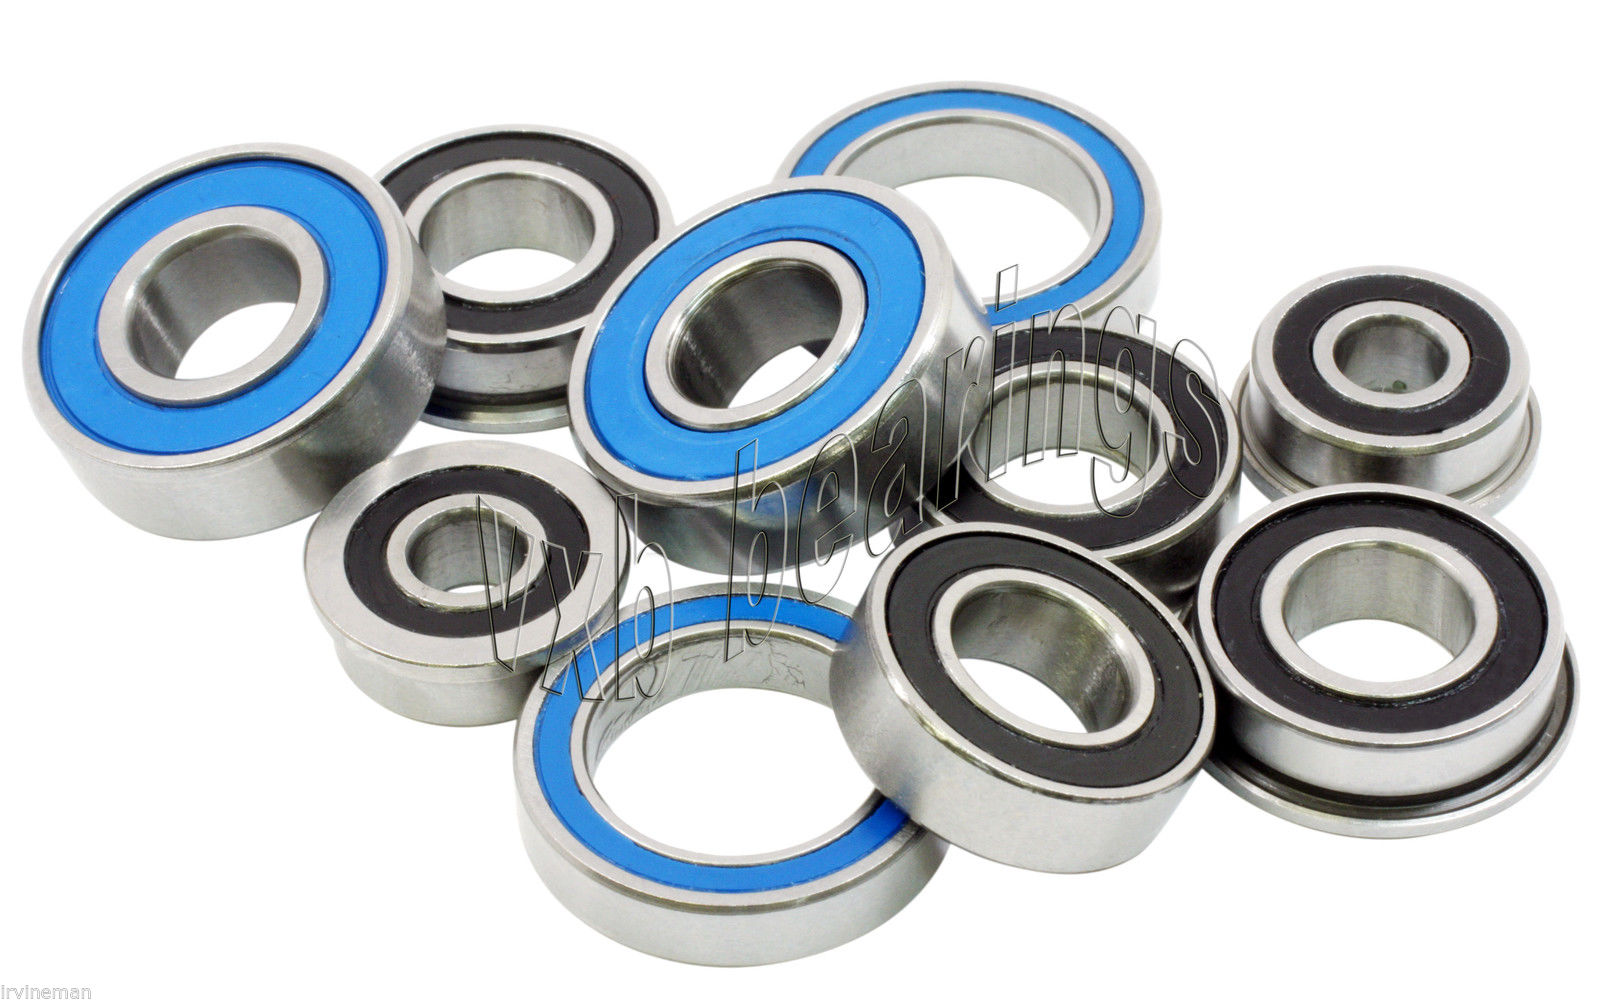 high temperature Align Helis 450 PRO U/grade-d/train-rotor Ceramic Upgrade Bearings